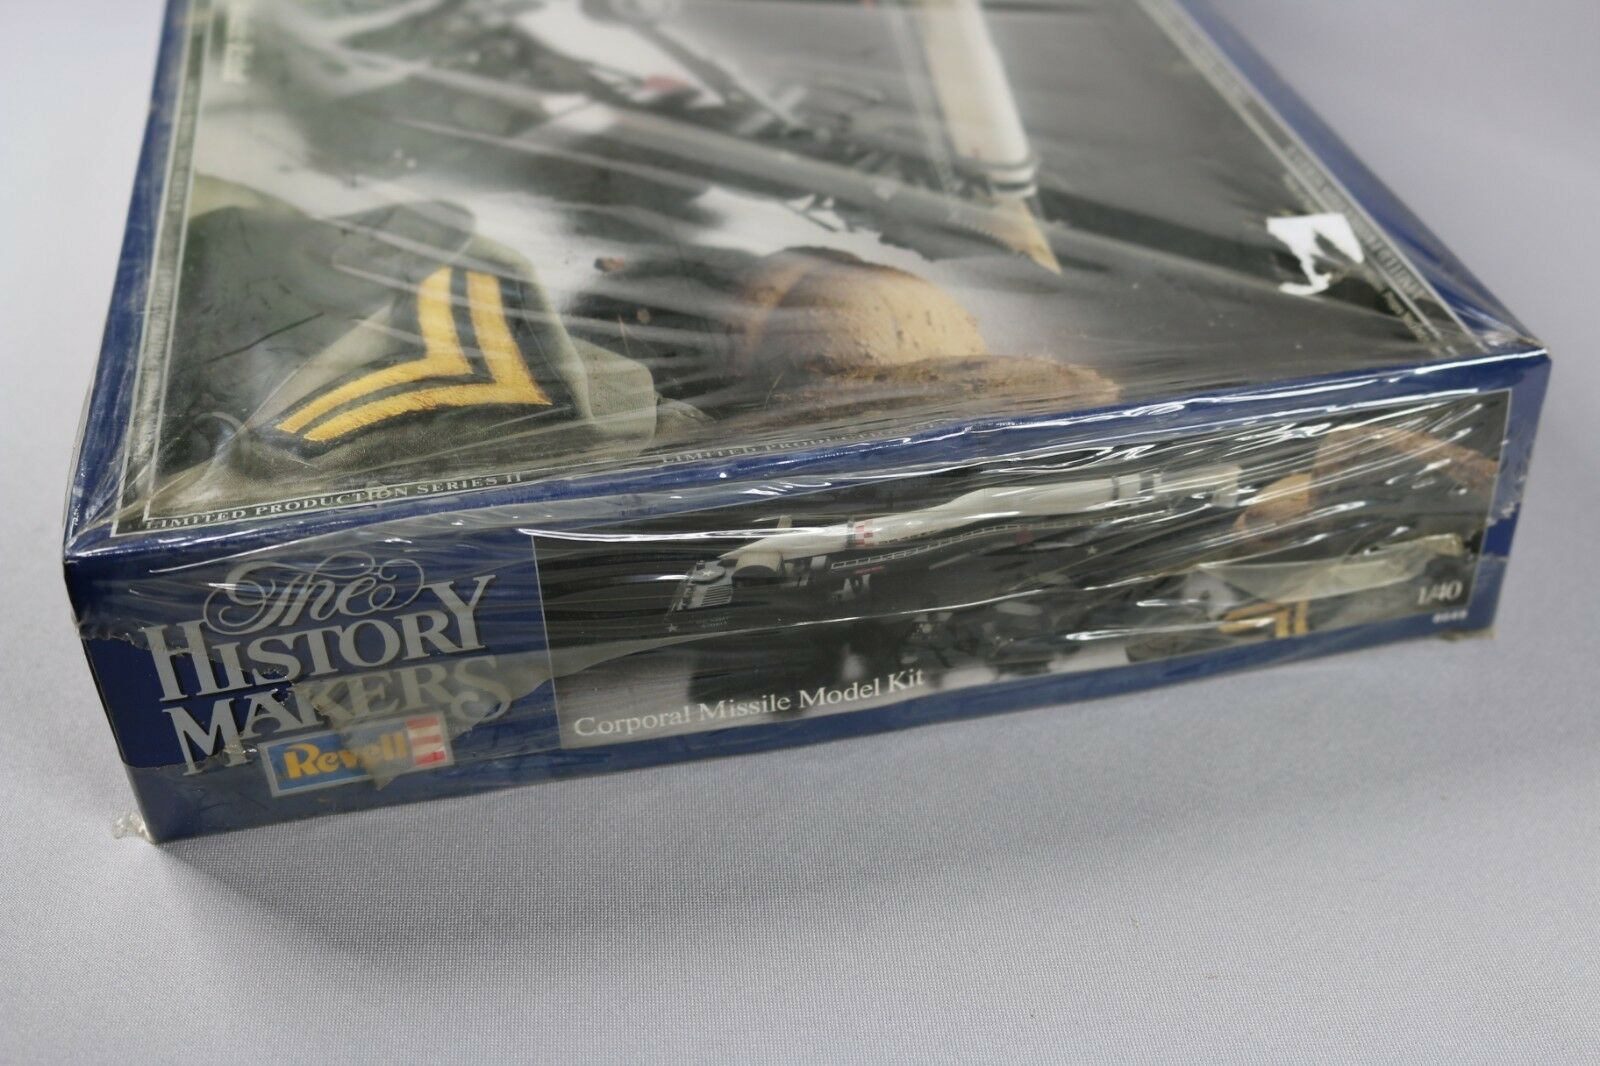 Zf1236 Revell 1 40 Maqueta Militar 8649 8649 8649 The History Makers Corporal Misil 70c012